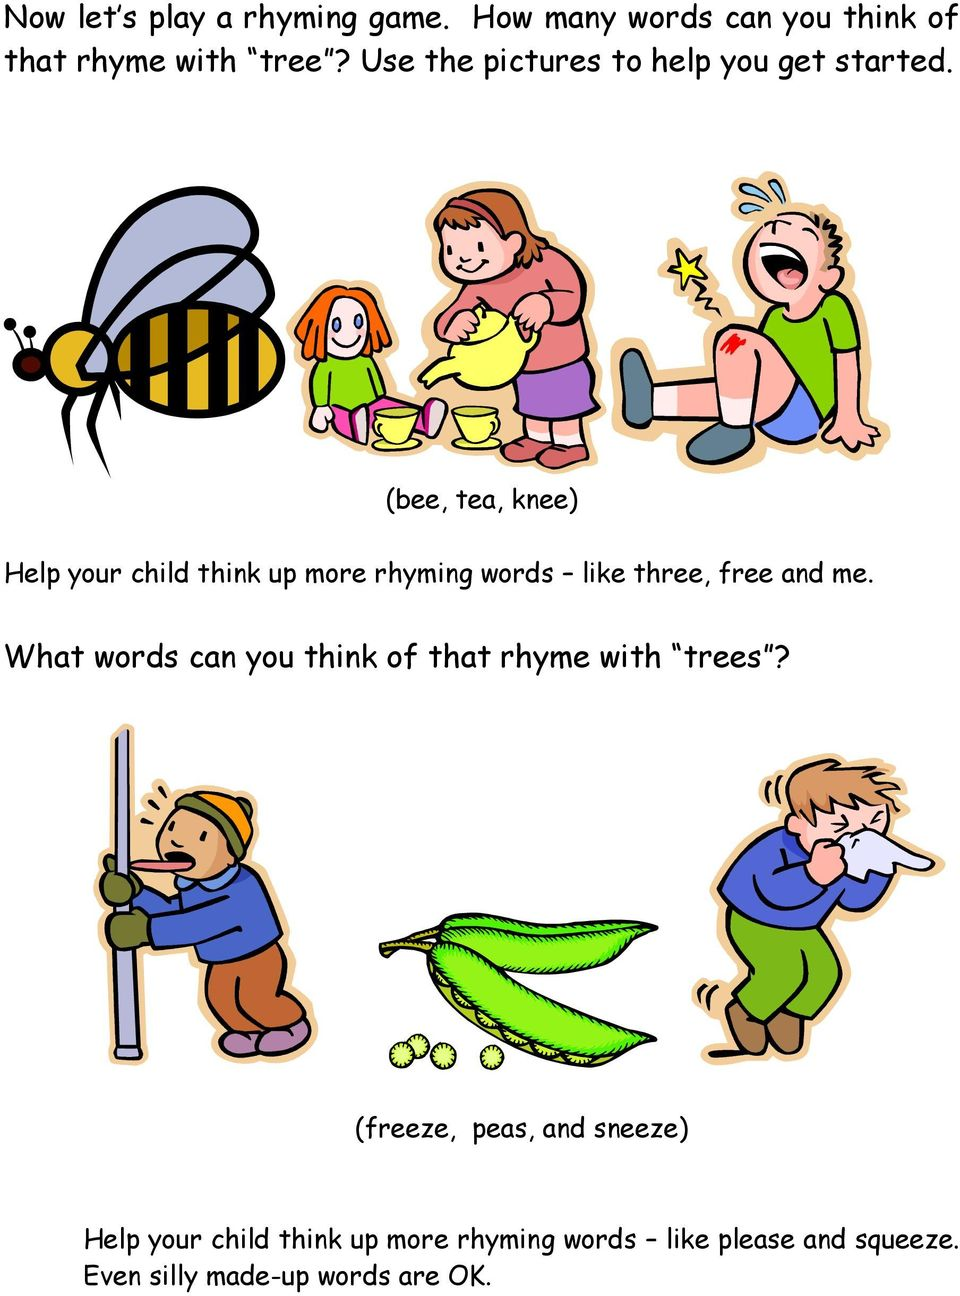 (bee, tea, knee) Help your child think up more rhyming words like three, free and me.